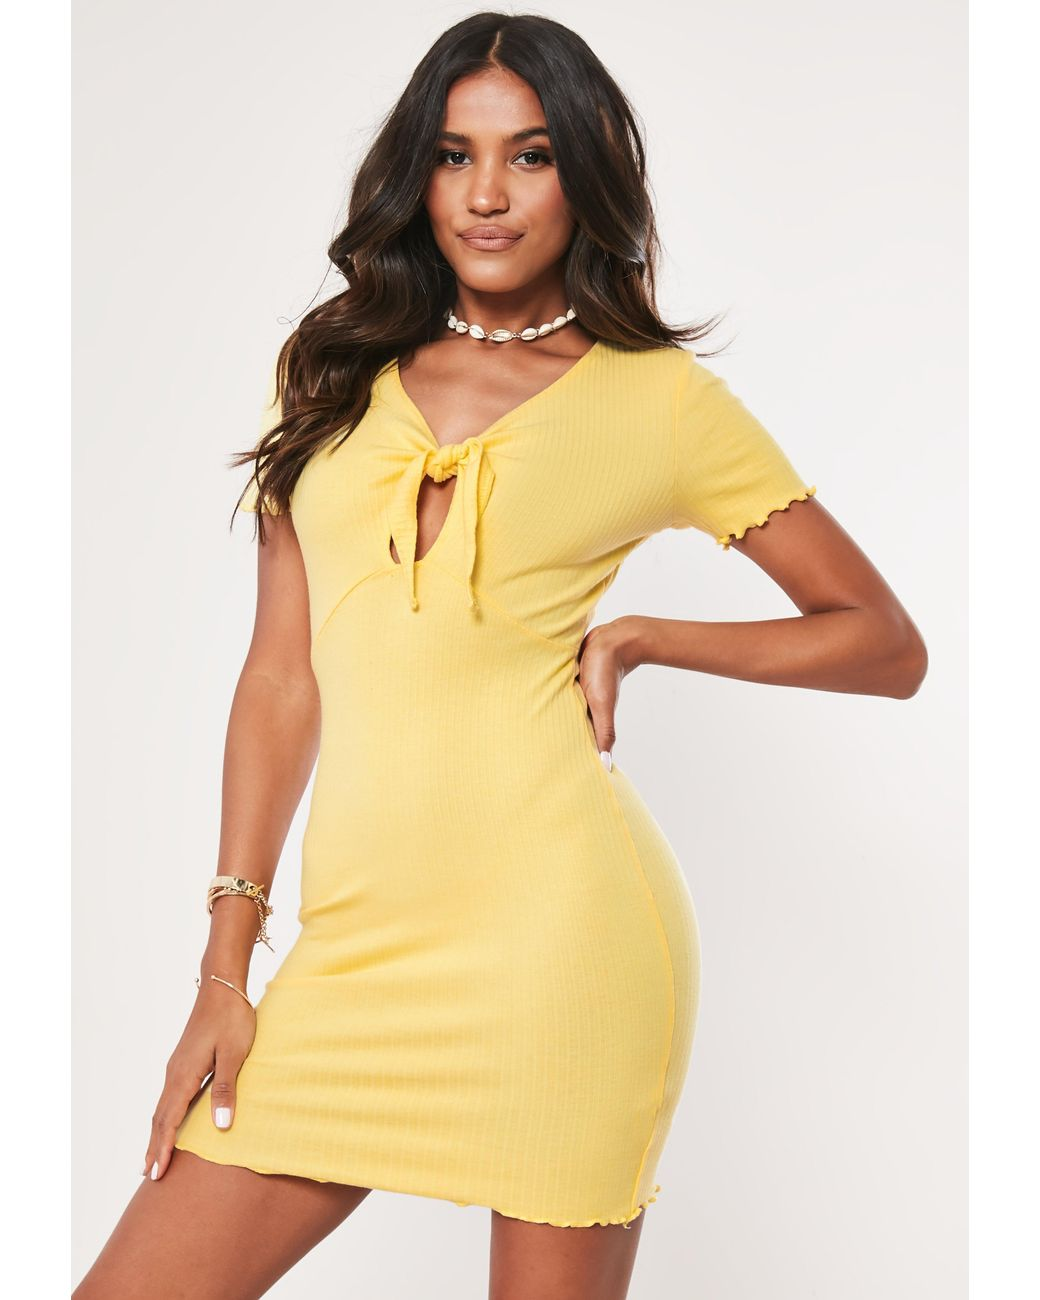 46f3998d177d Lyst - Missguided Lemon Ribbed Tie Front Bodycon Mini Dress in Yellow